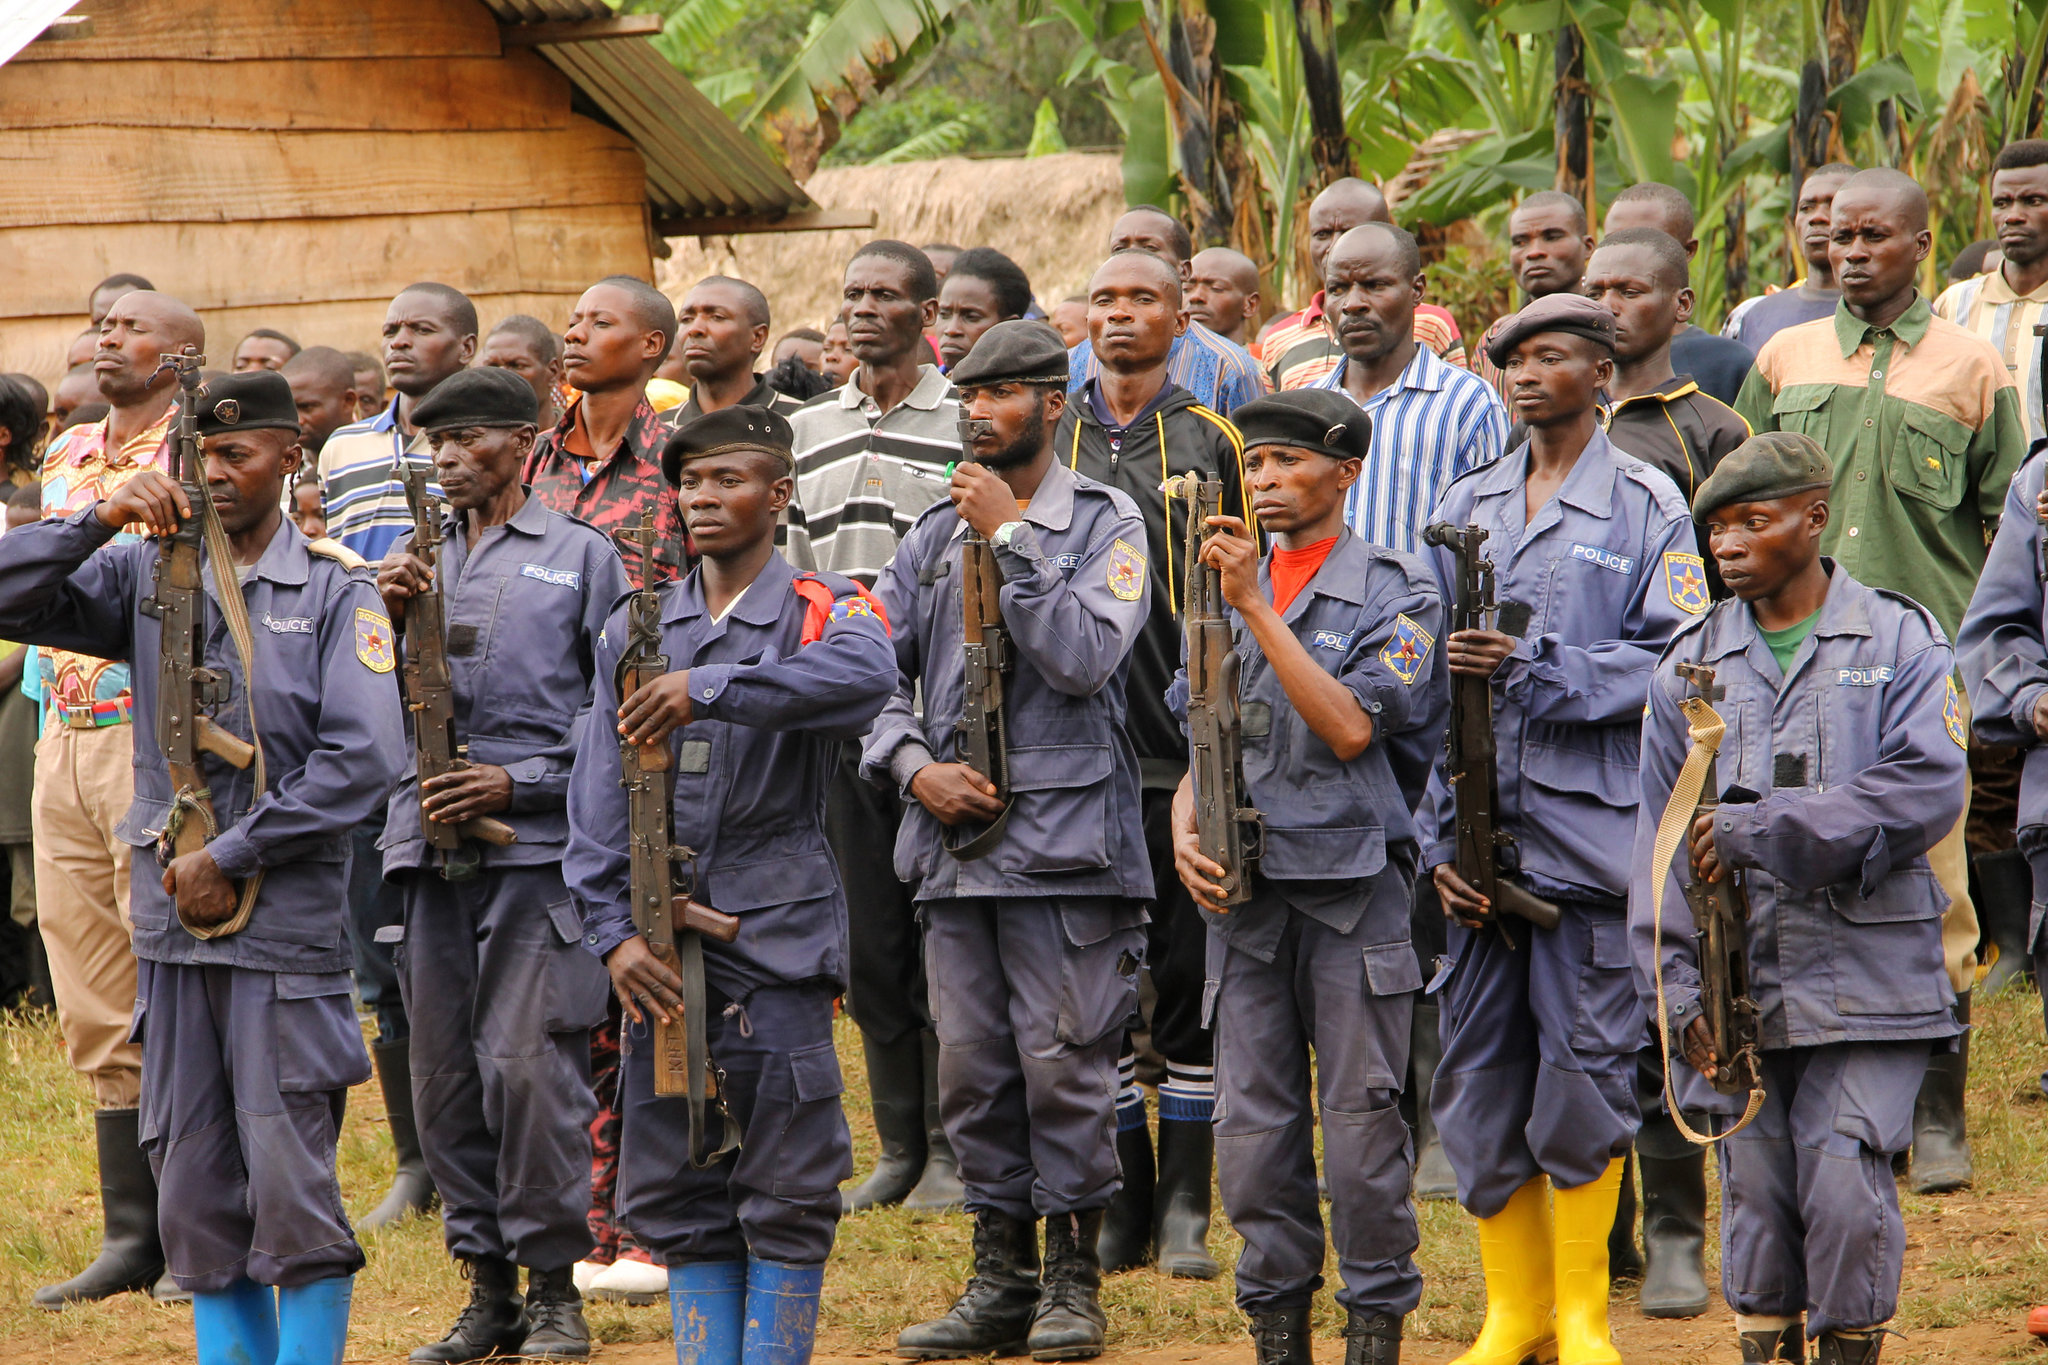 Congolese national police officers in front of the 83 Democratic Forces for the Liberation of Rwanda guerrillas who surrendered in Kigogo. SARAH FLUCK FOR THE NEW YORK TIMES